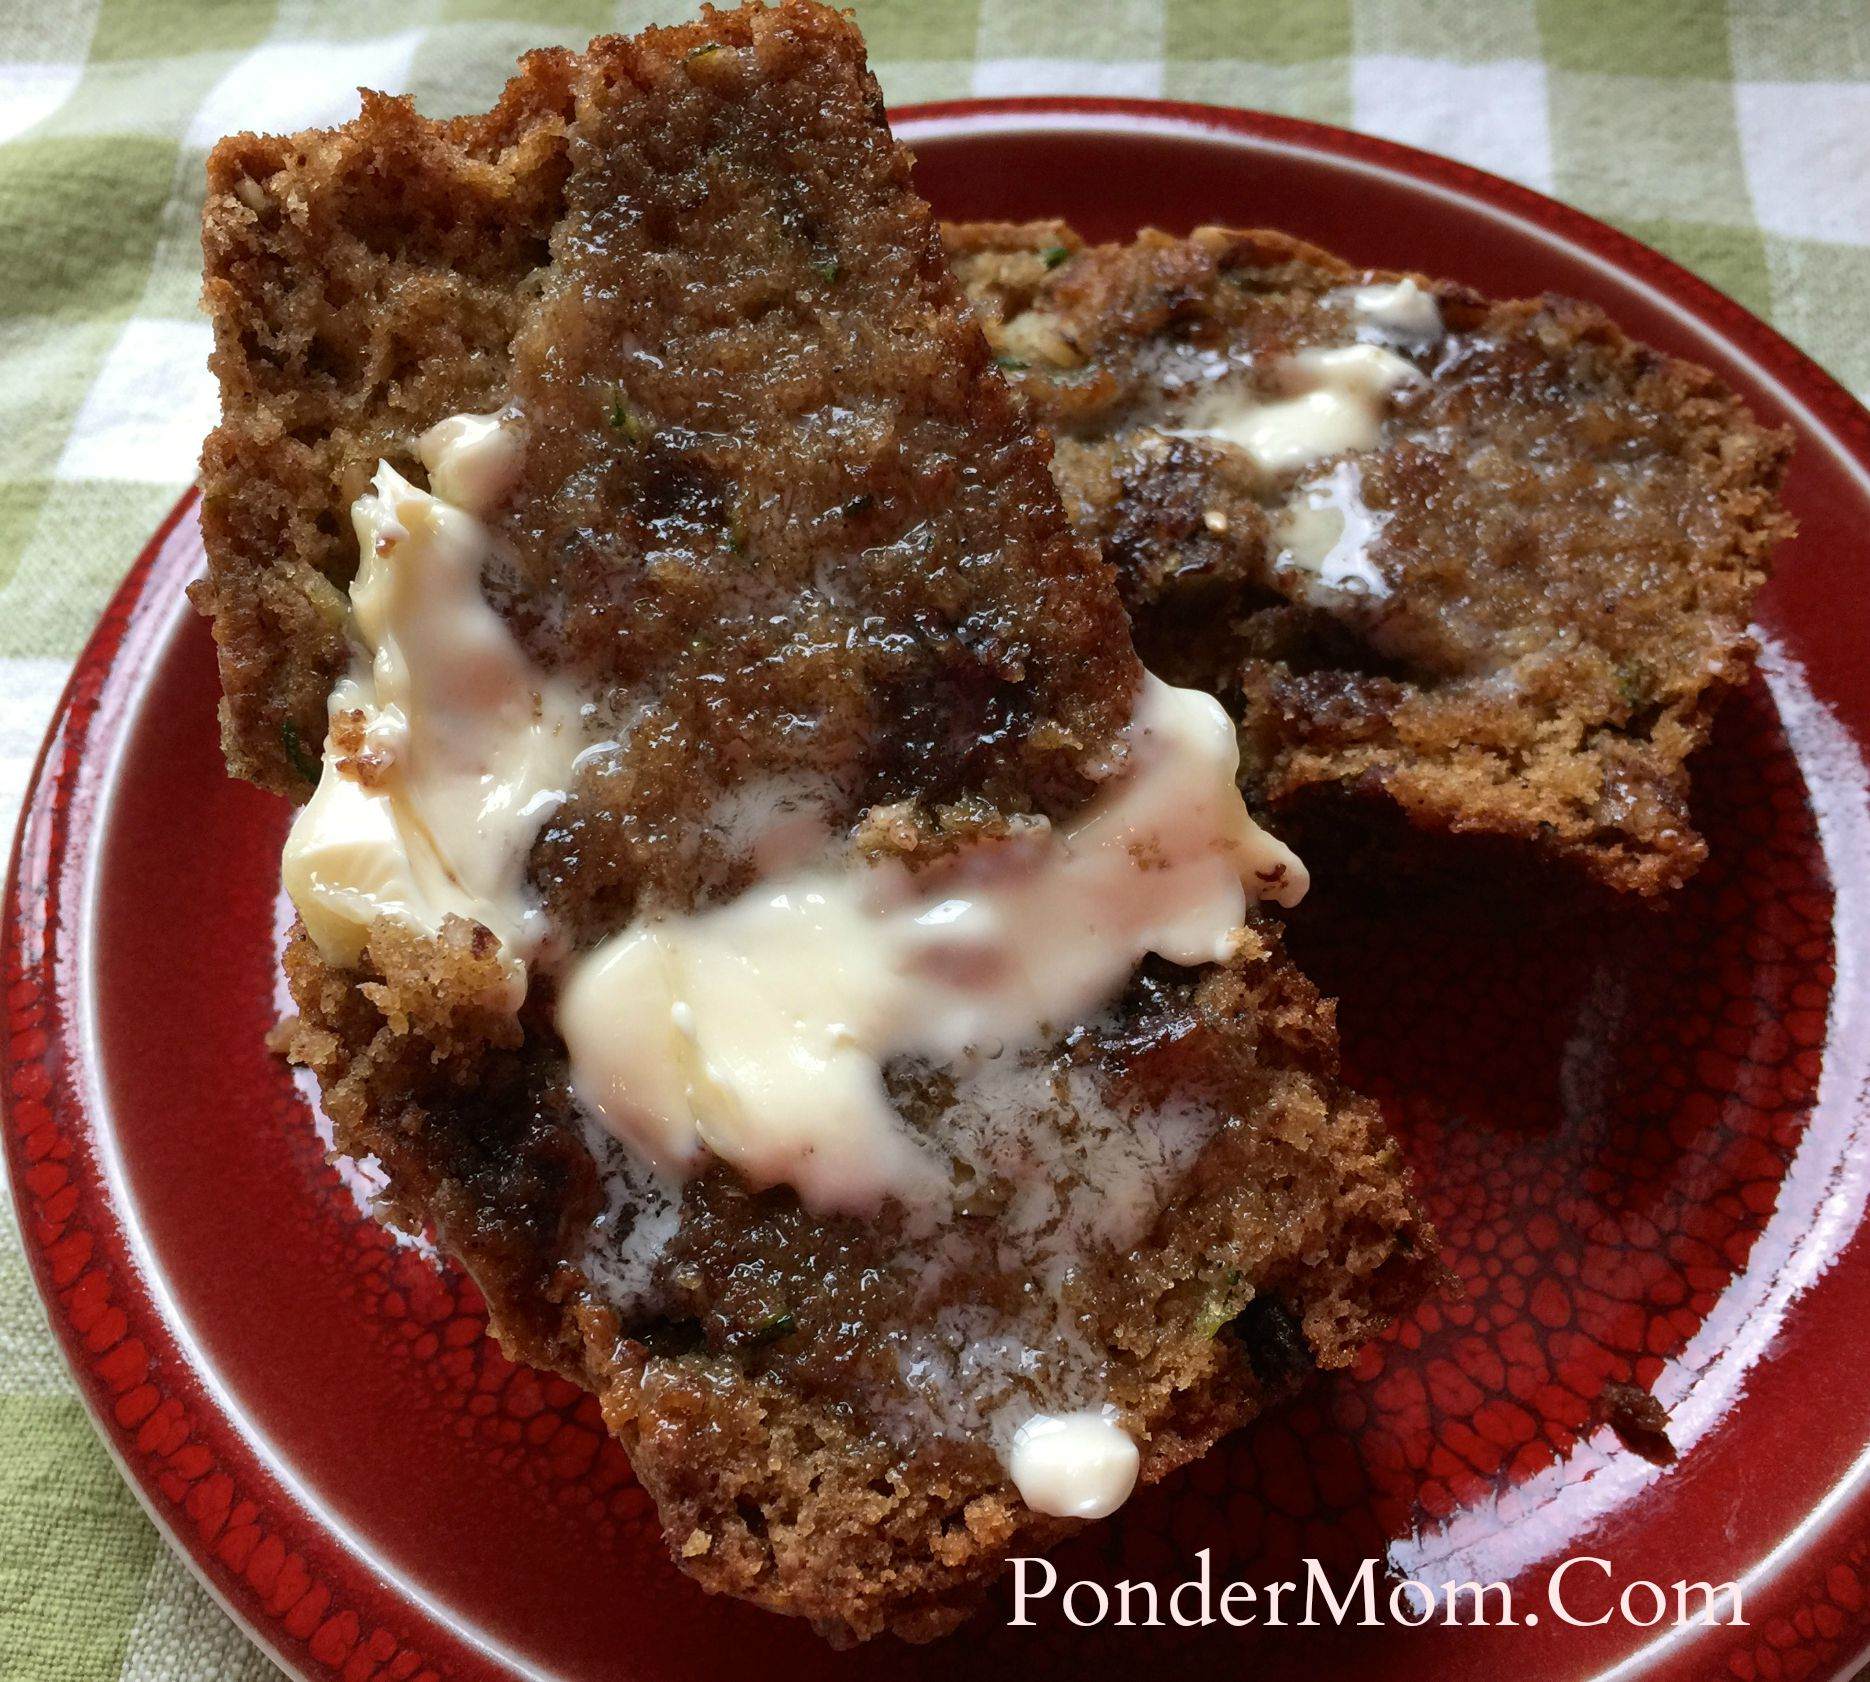 Garden Treats, Part I: Moist Zucchini Bread with Chocolate Chips